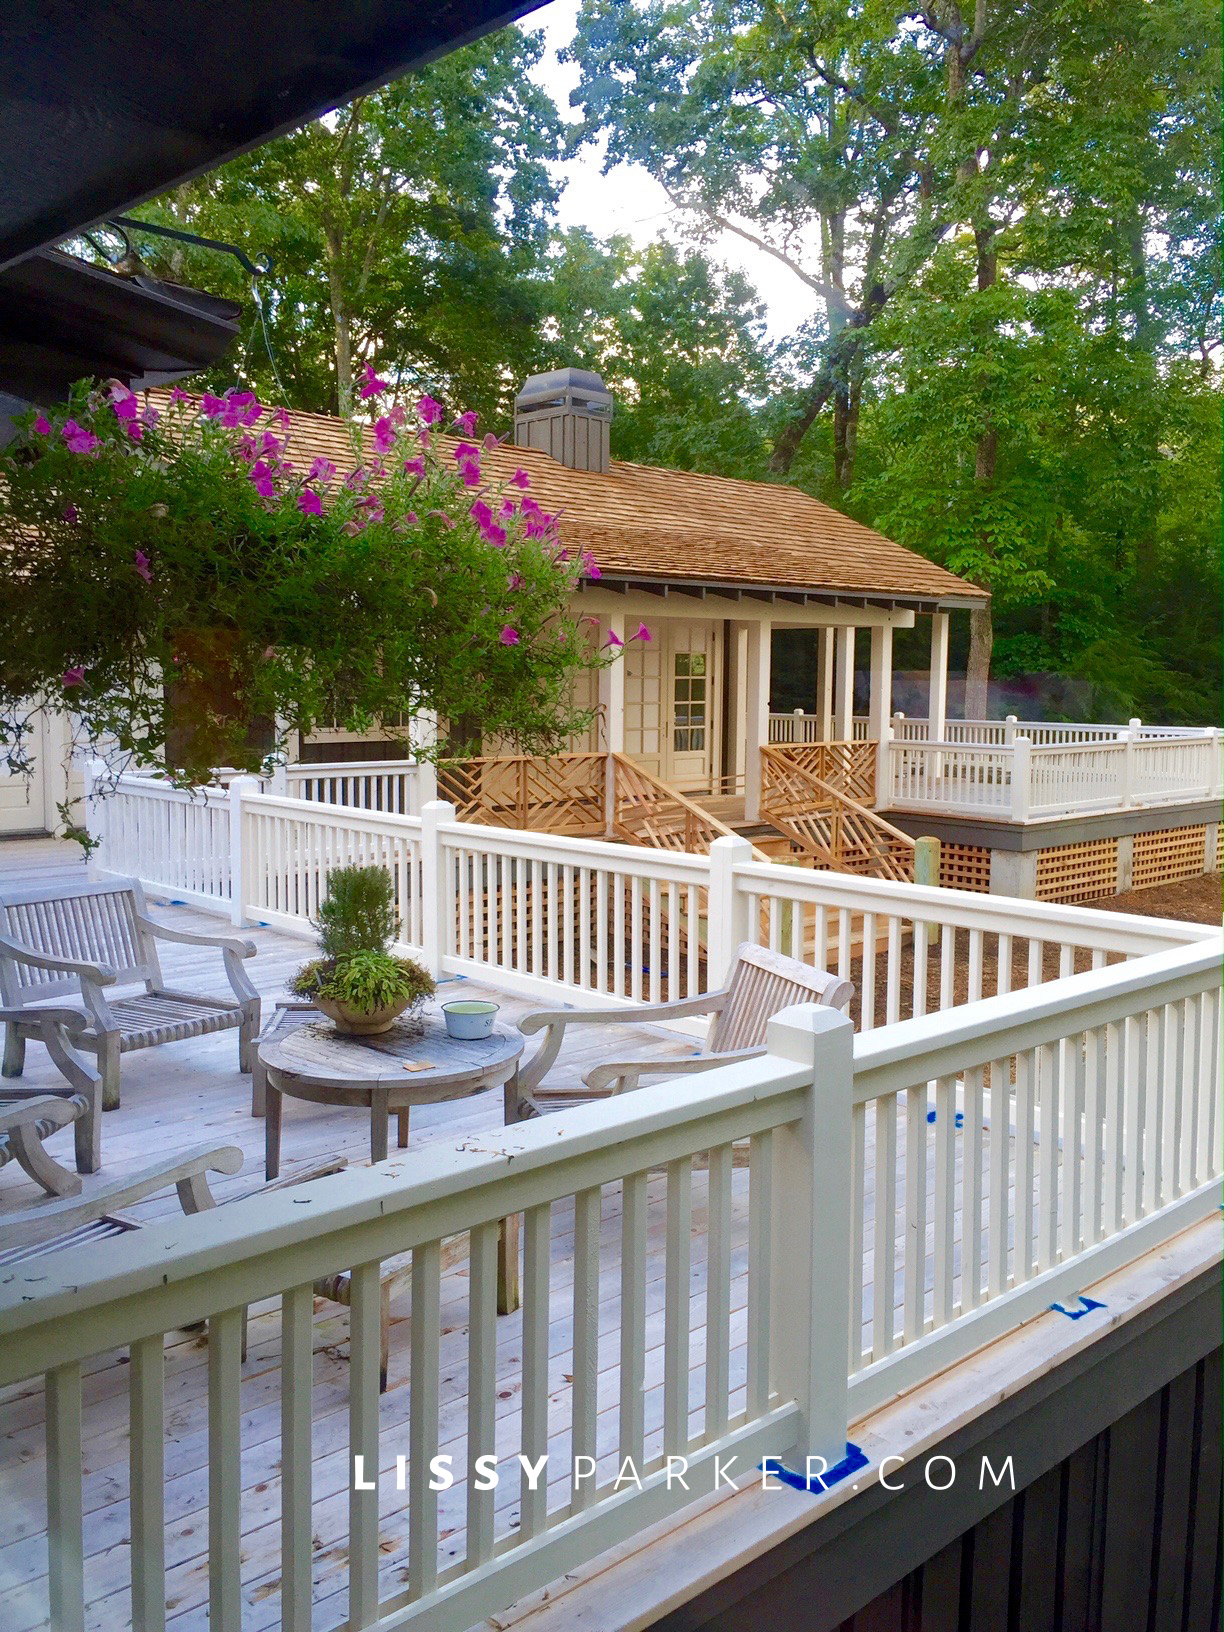 construction update, new porch